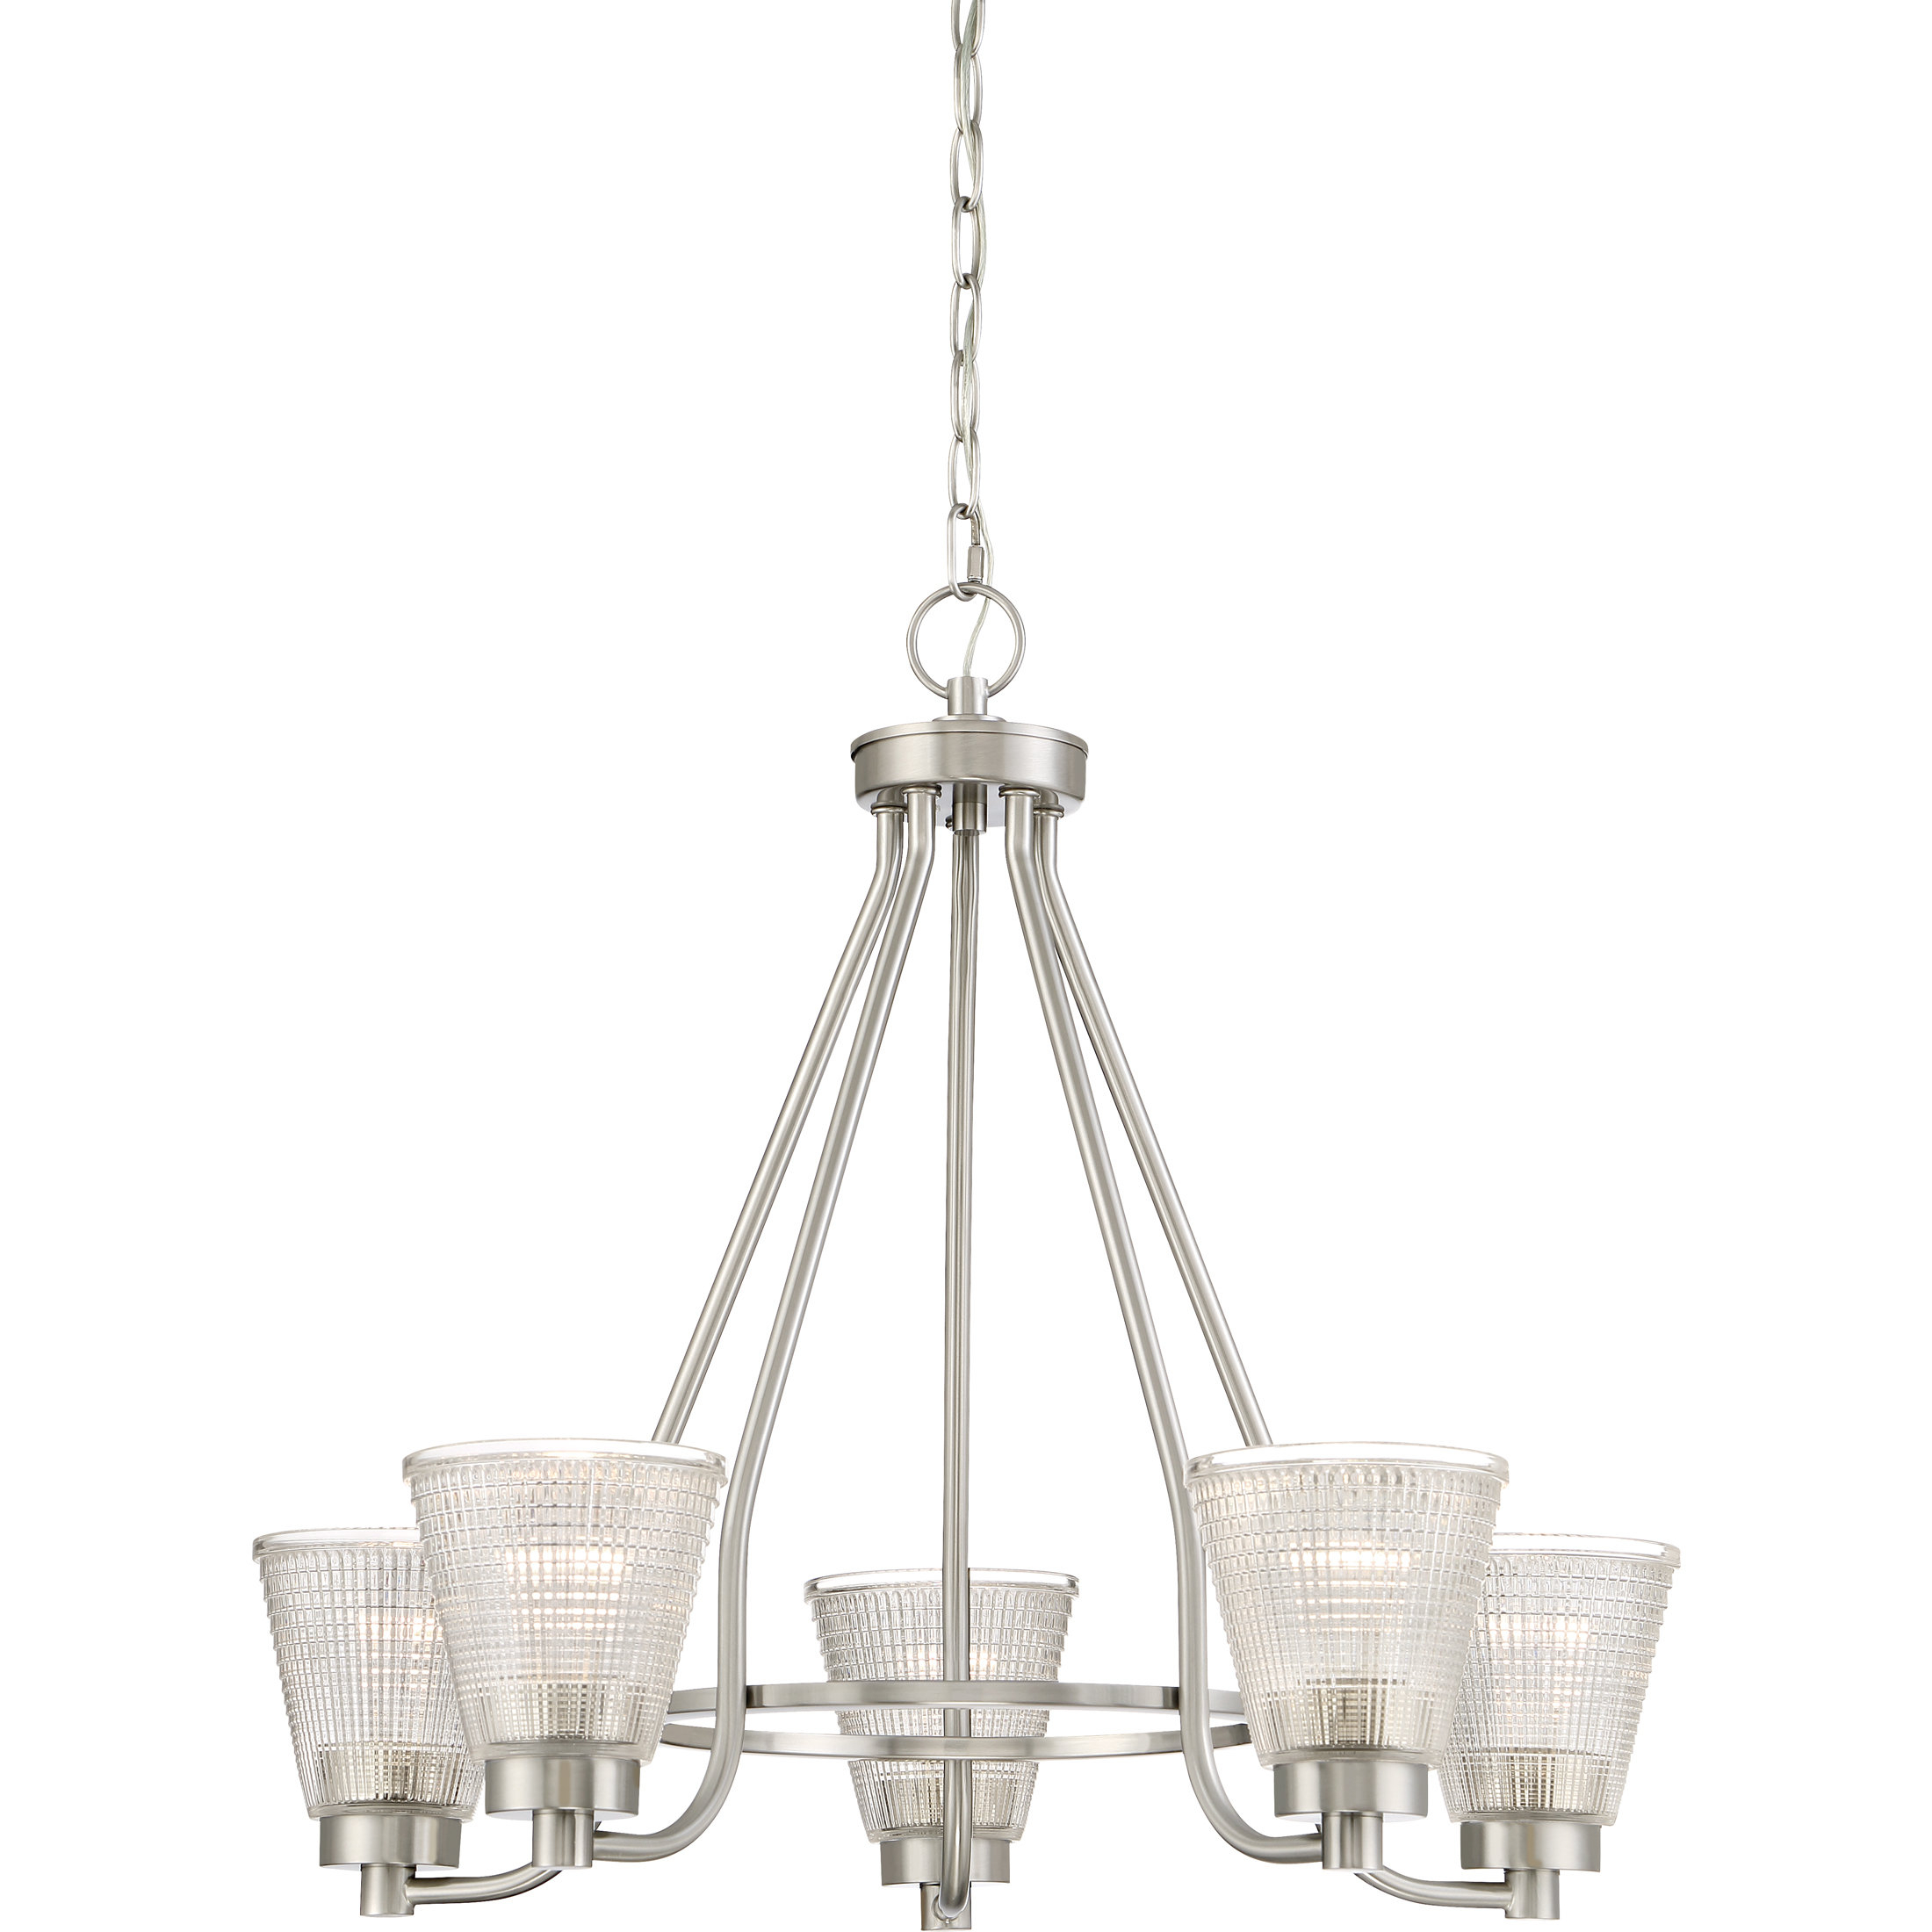 Haskett 5 Light Shaded Chandelier Intended For Widely Used Newent 5 Light Shaded Chandeliers (Gallery 5 of 20)